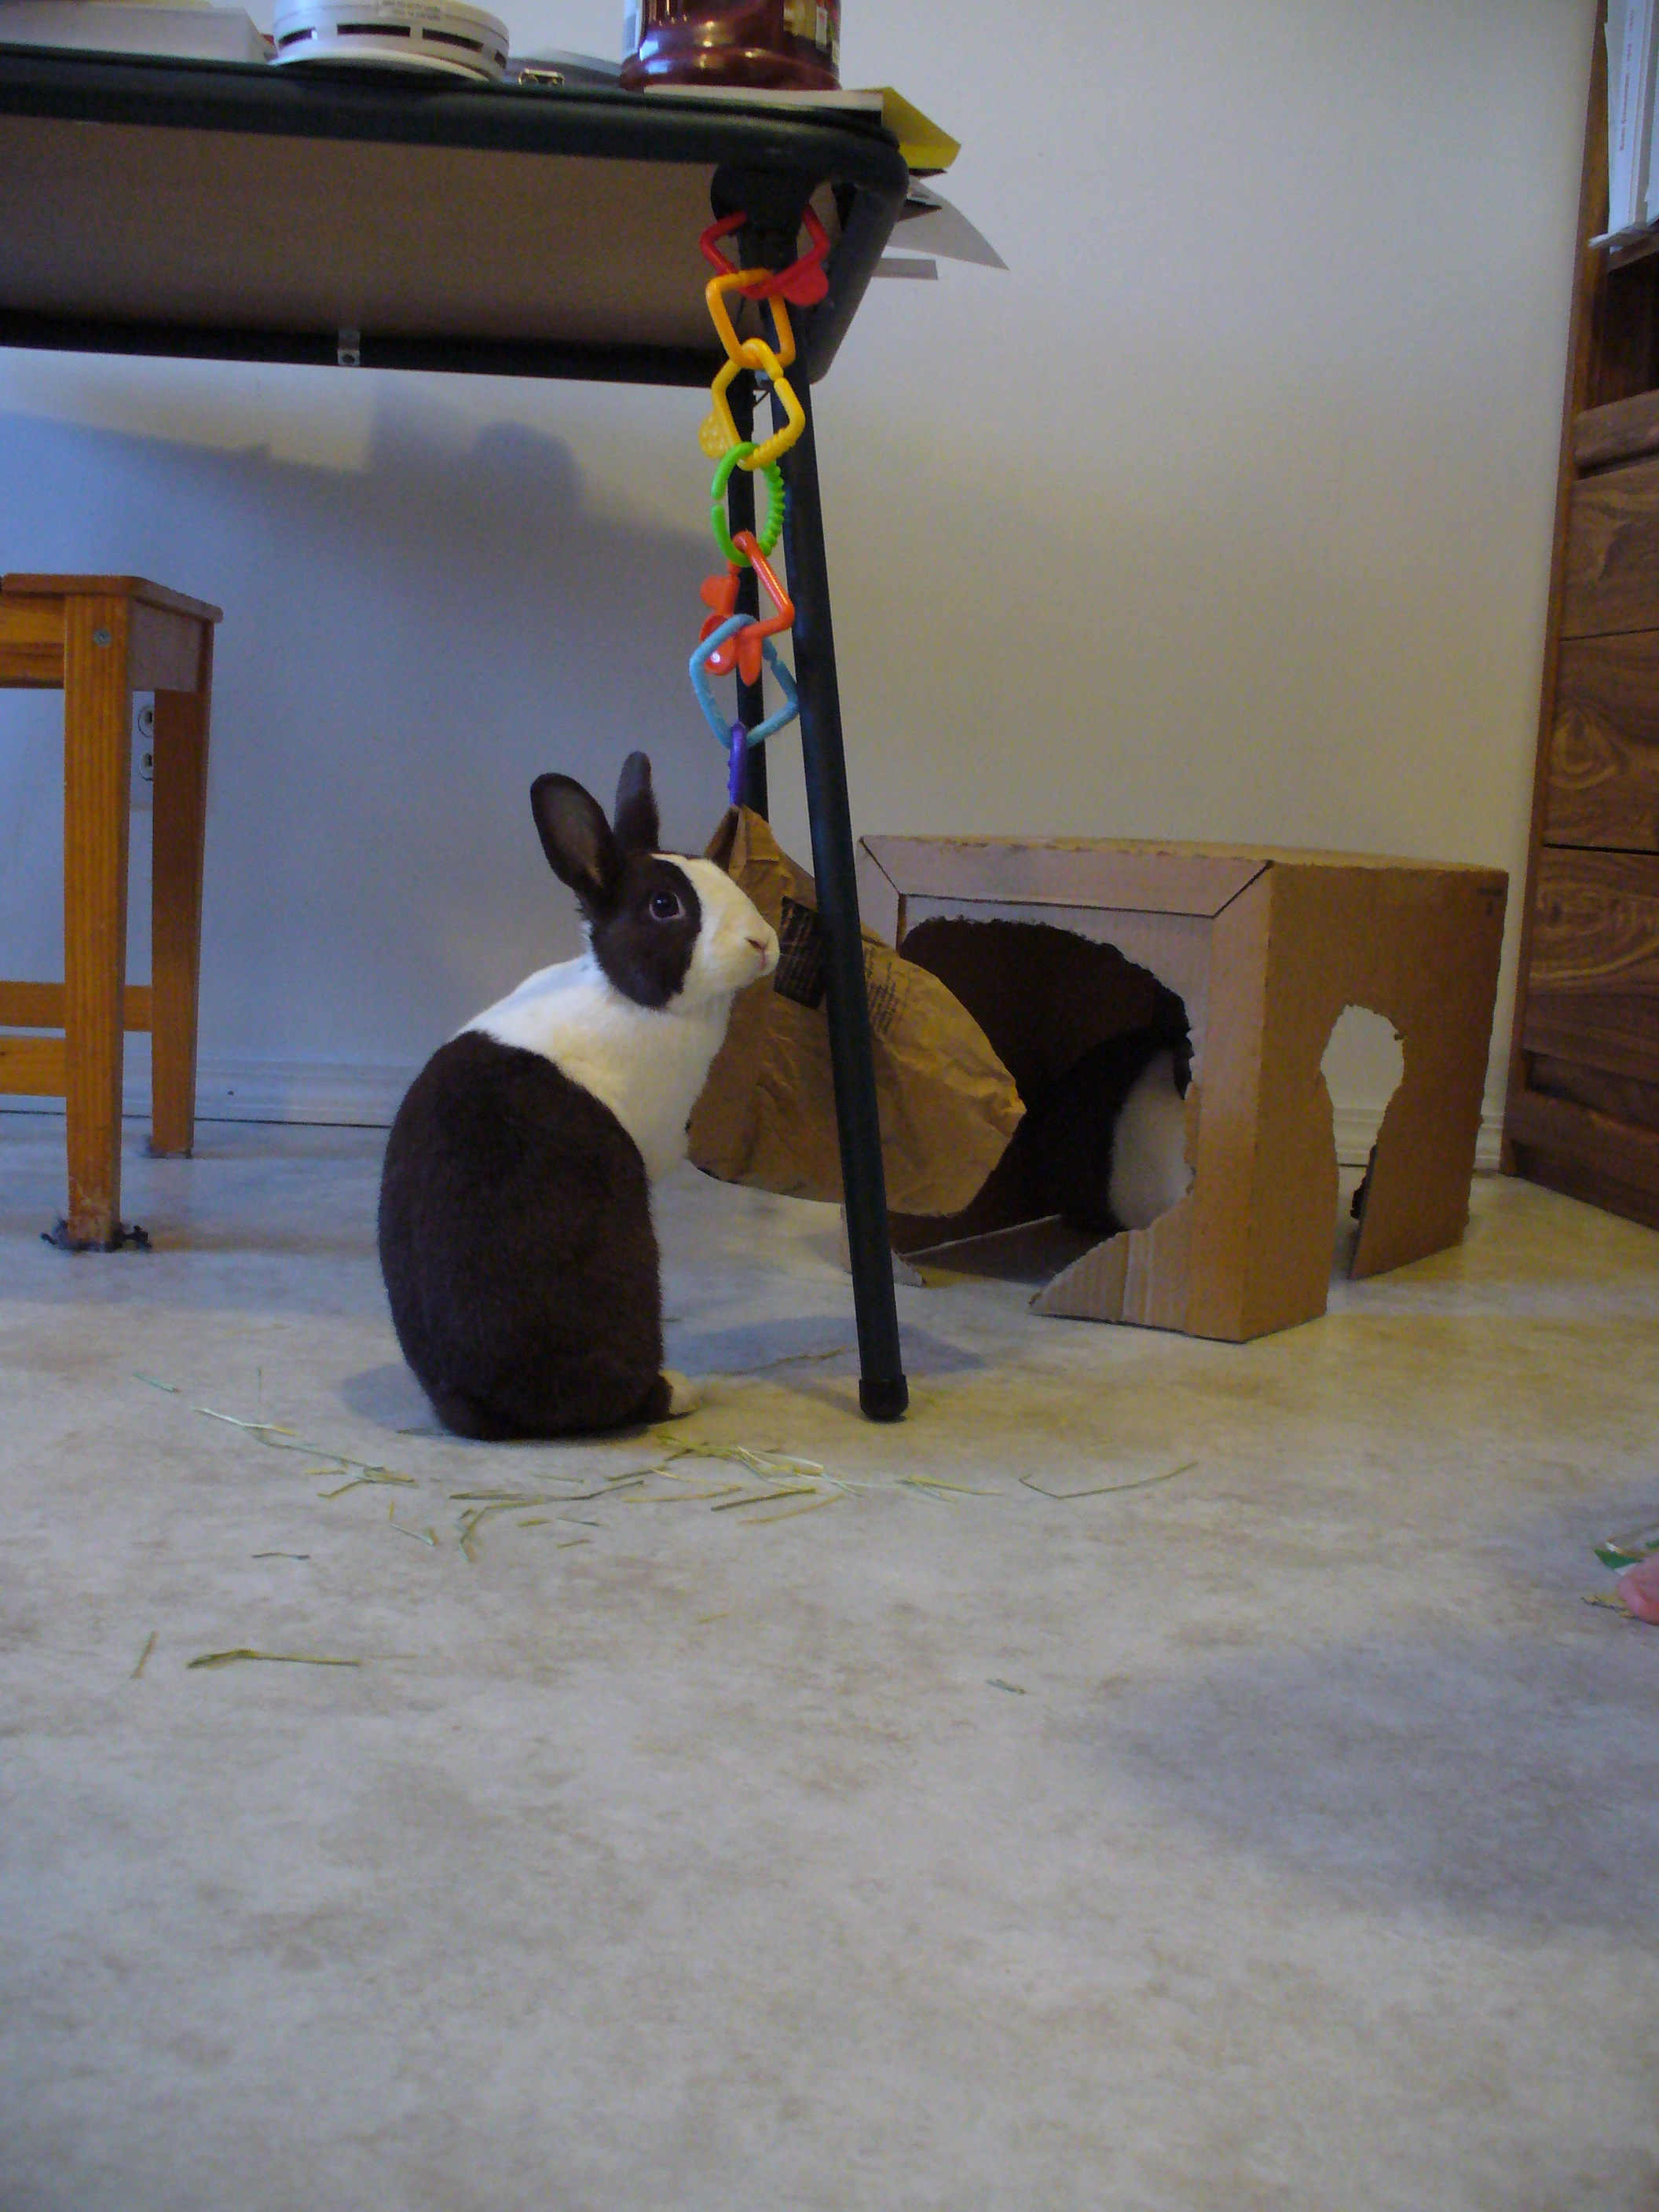 Does That Bag Need a Hay Refill, Bunny? 2